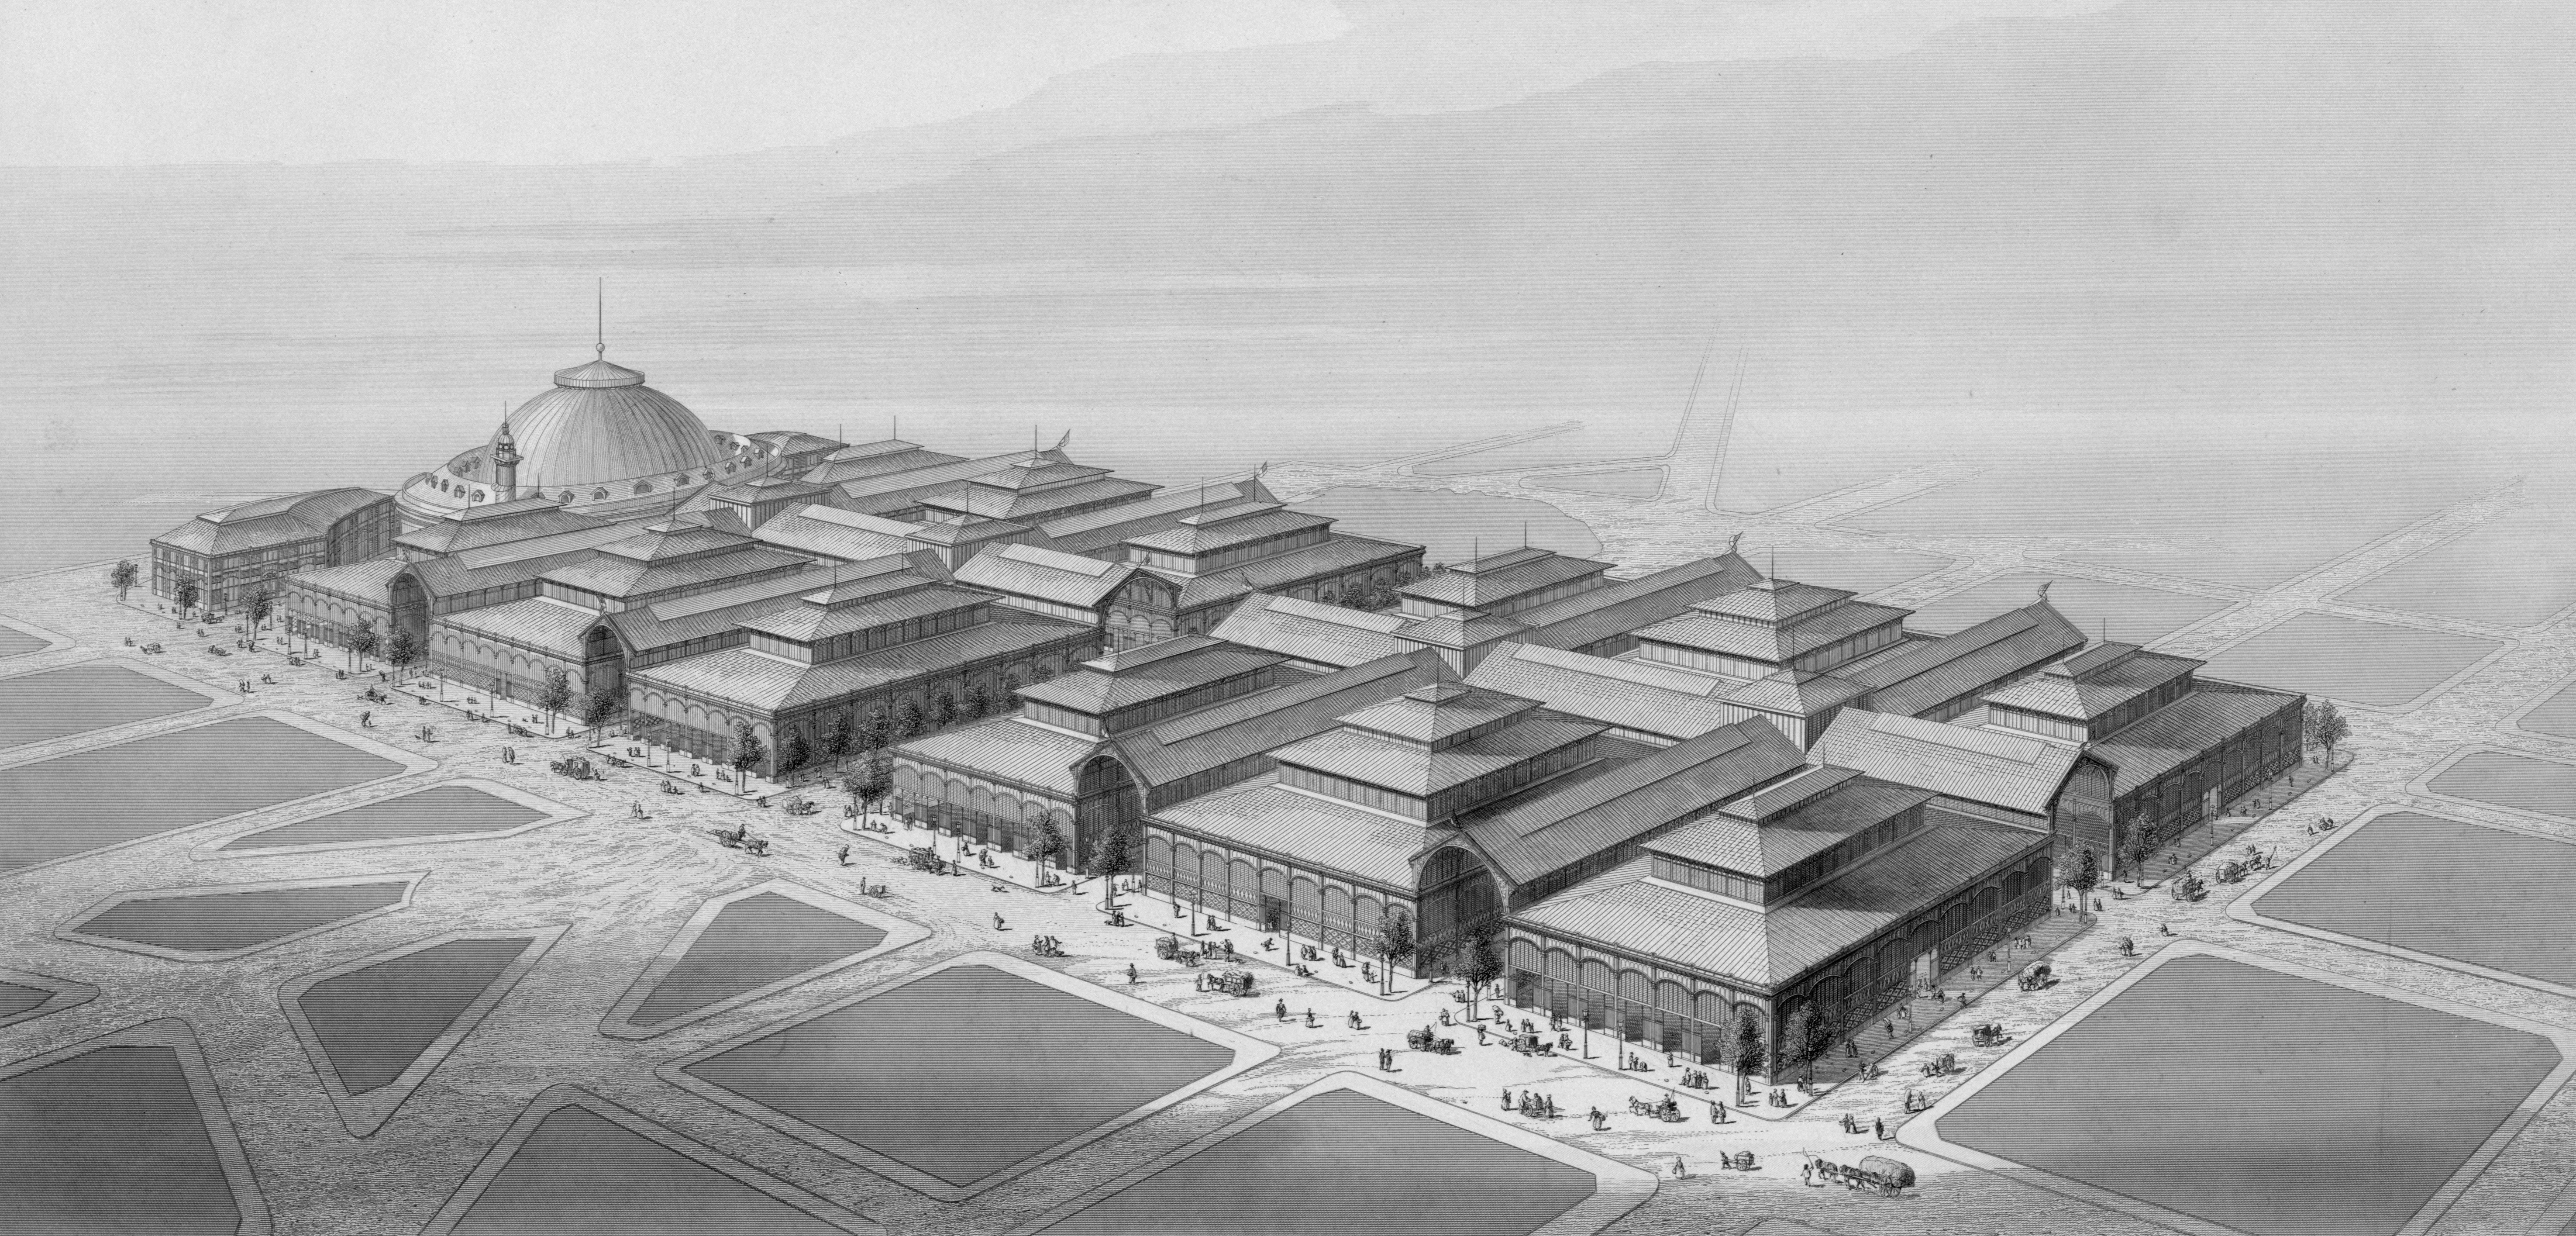 Design of Les Halles in 1863, By Victor Baltard